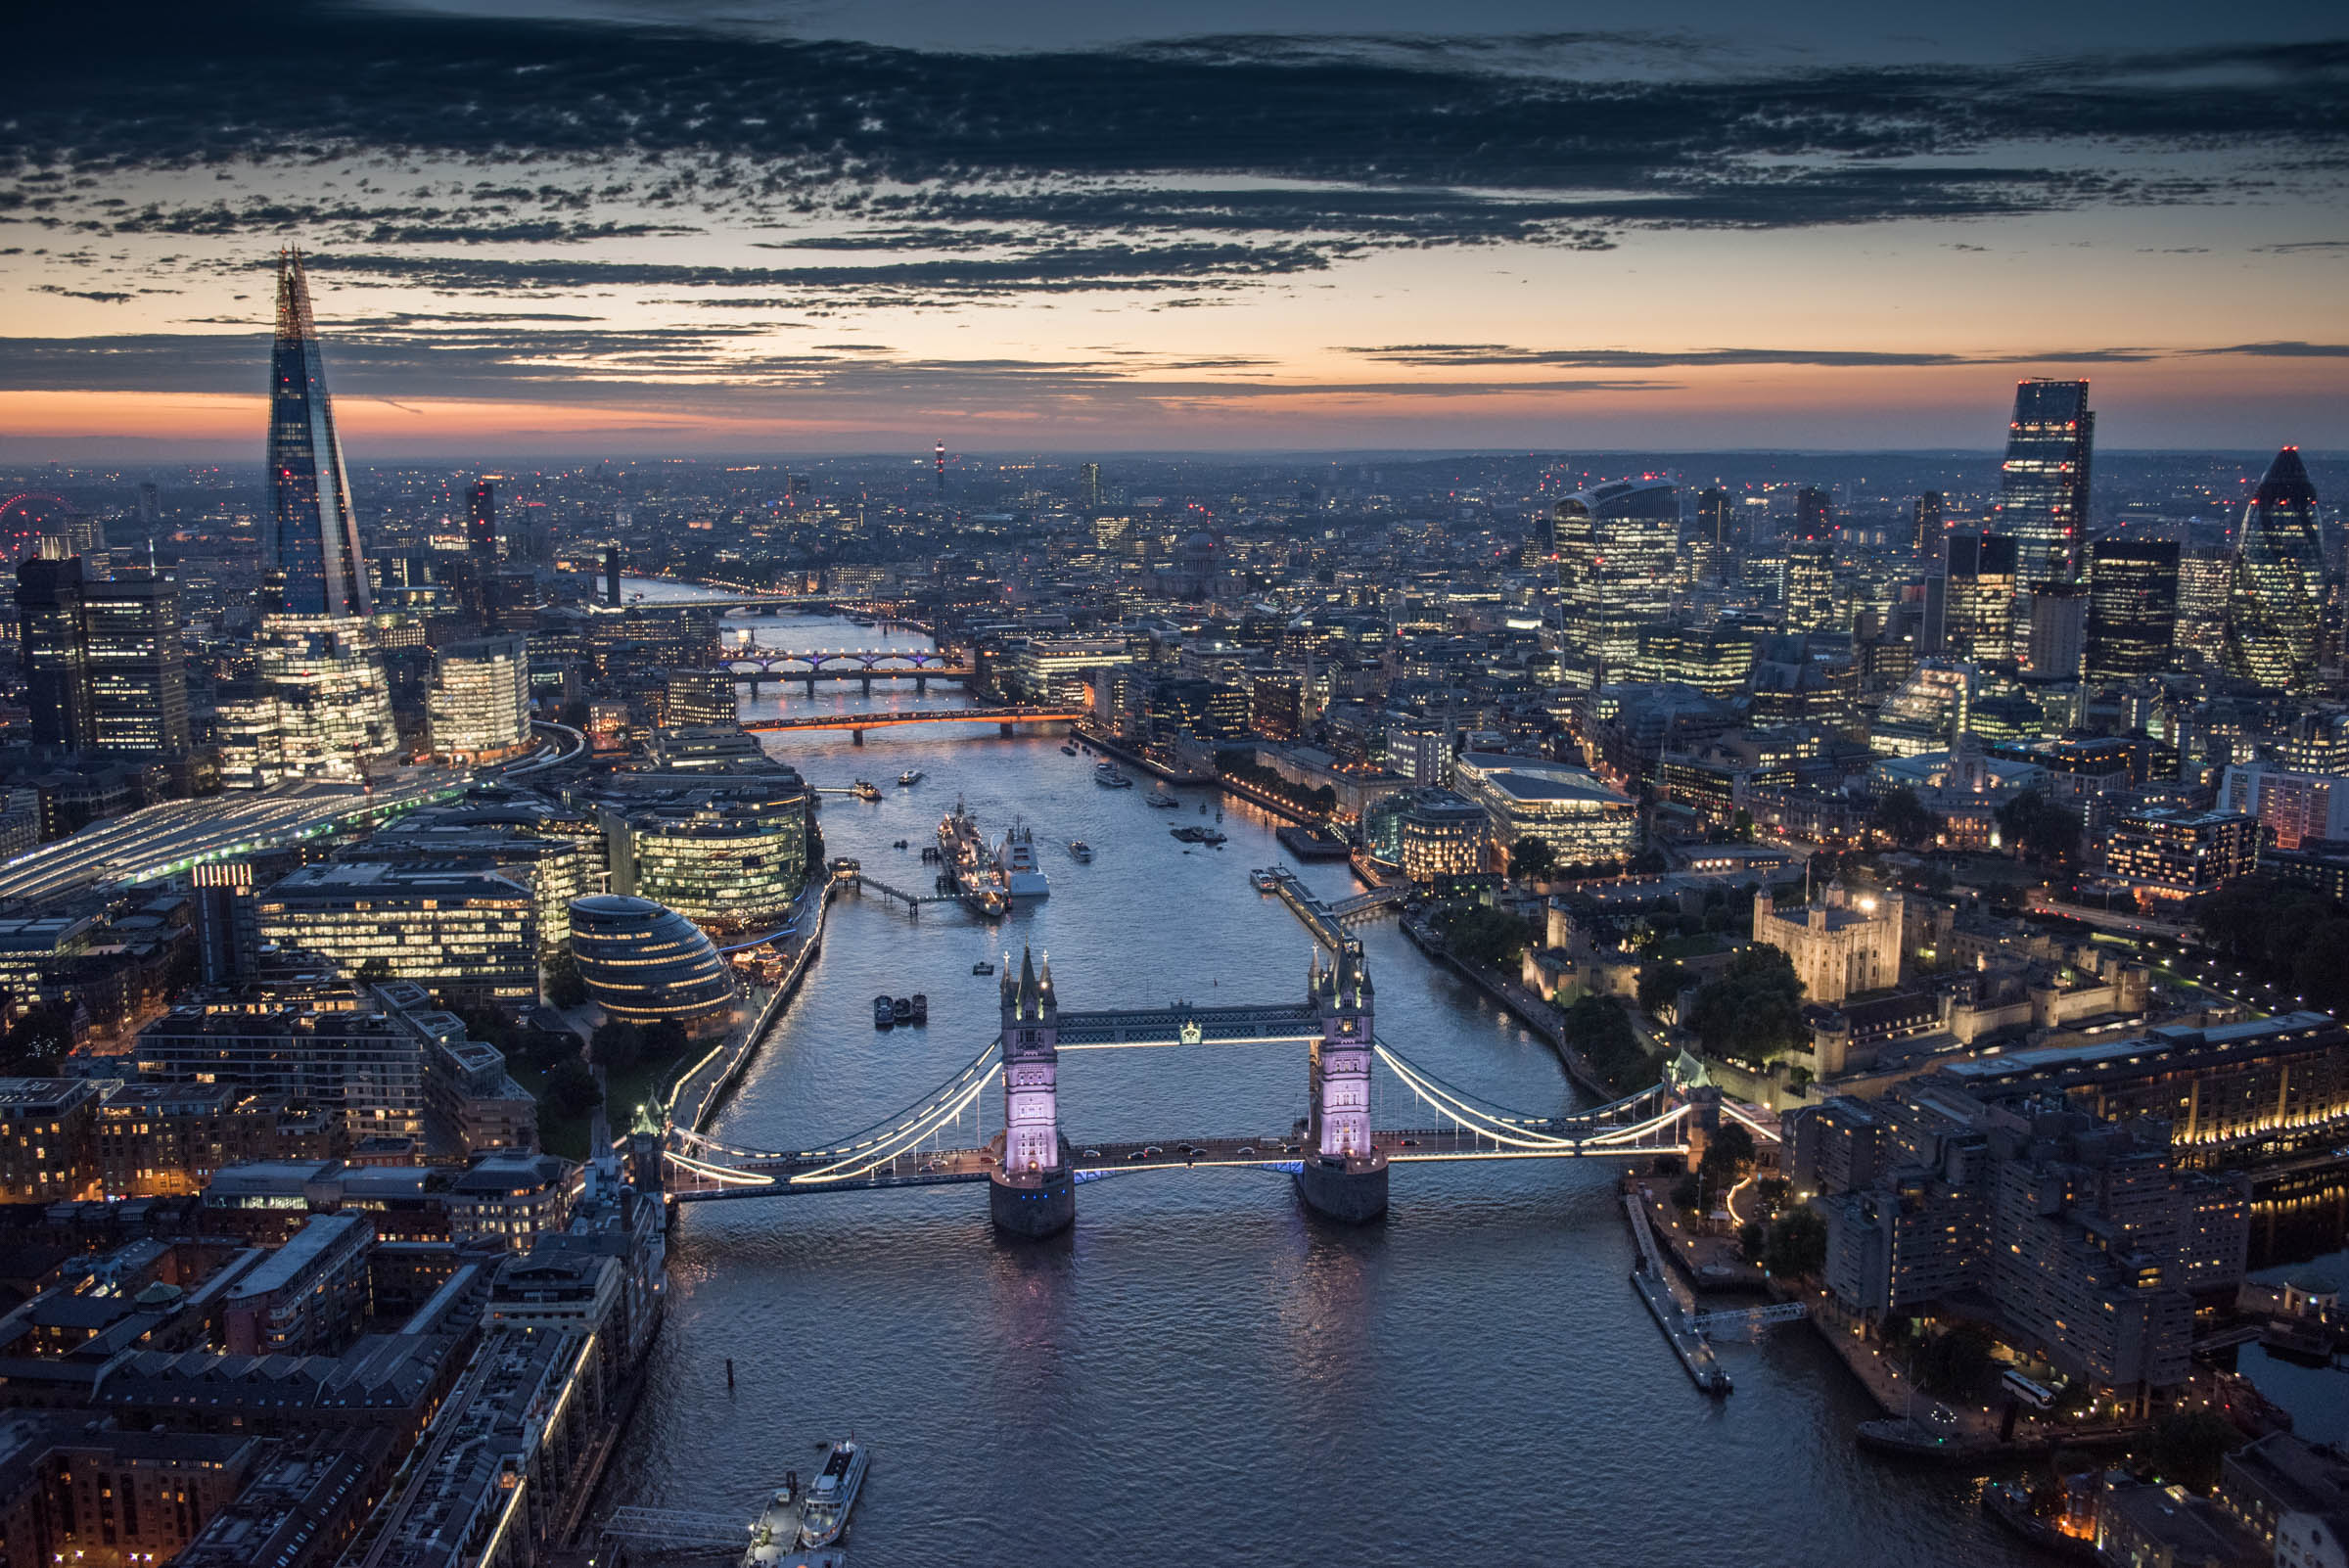 a view of Tower Bridge, Just after dusk, More London and the City of London, the Shard, with dispensation from the CAA down to 600ft. Date : September 2016